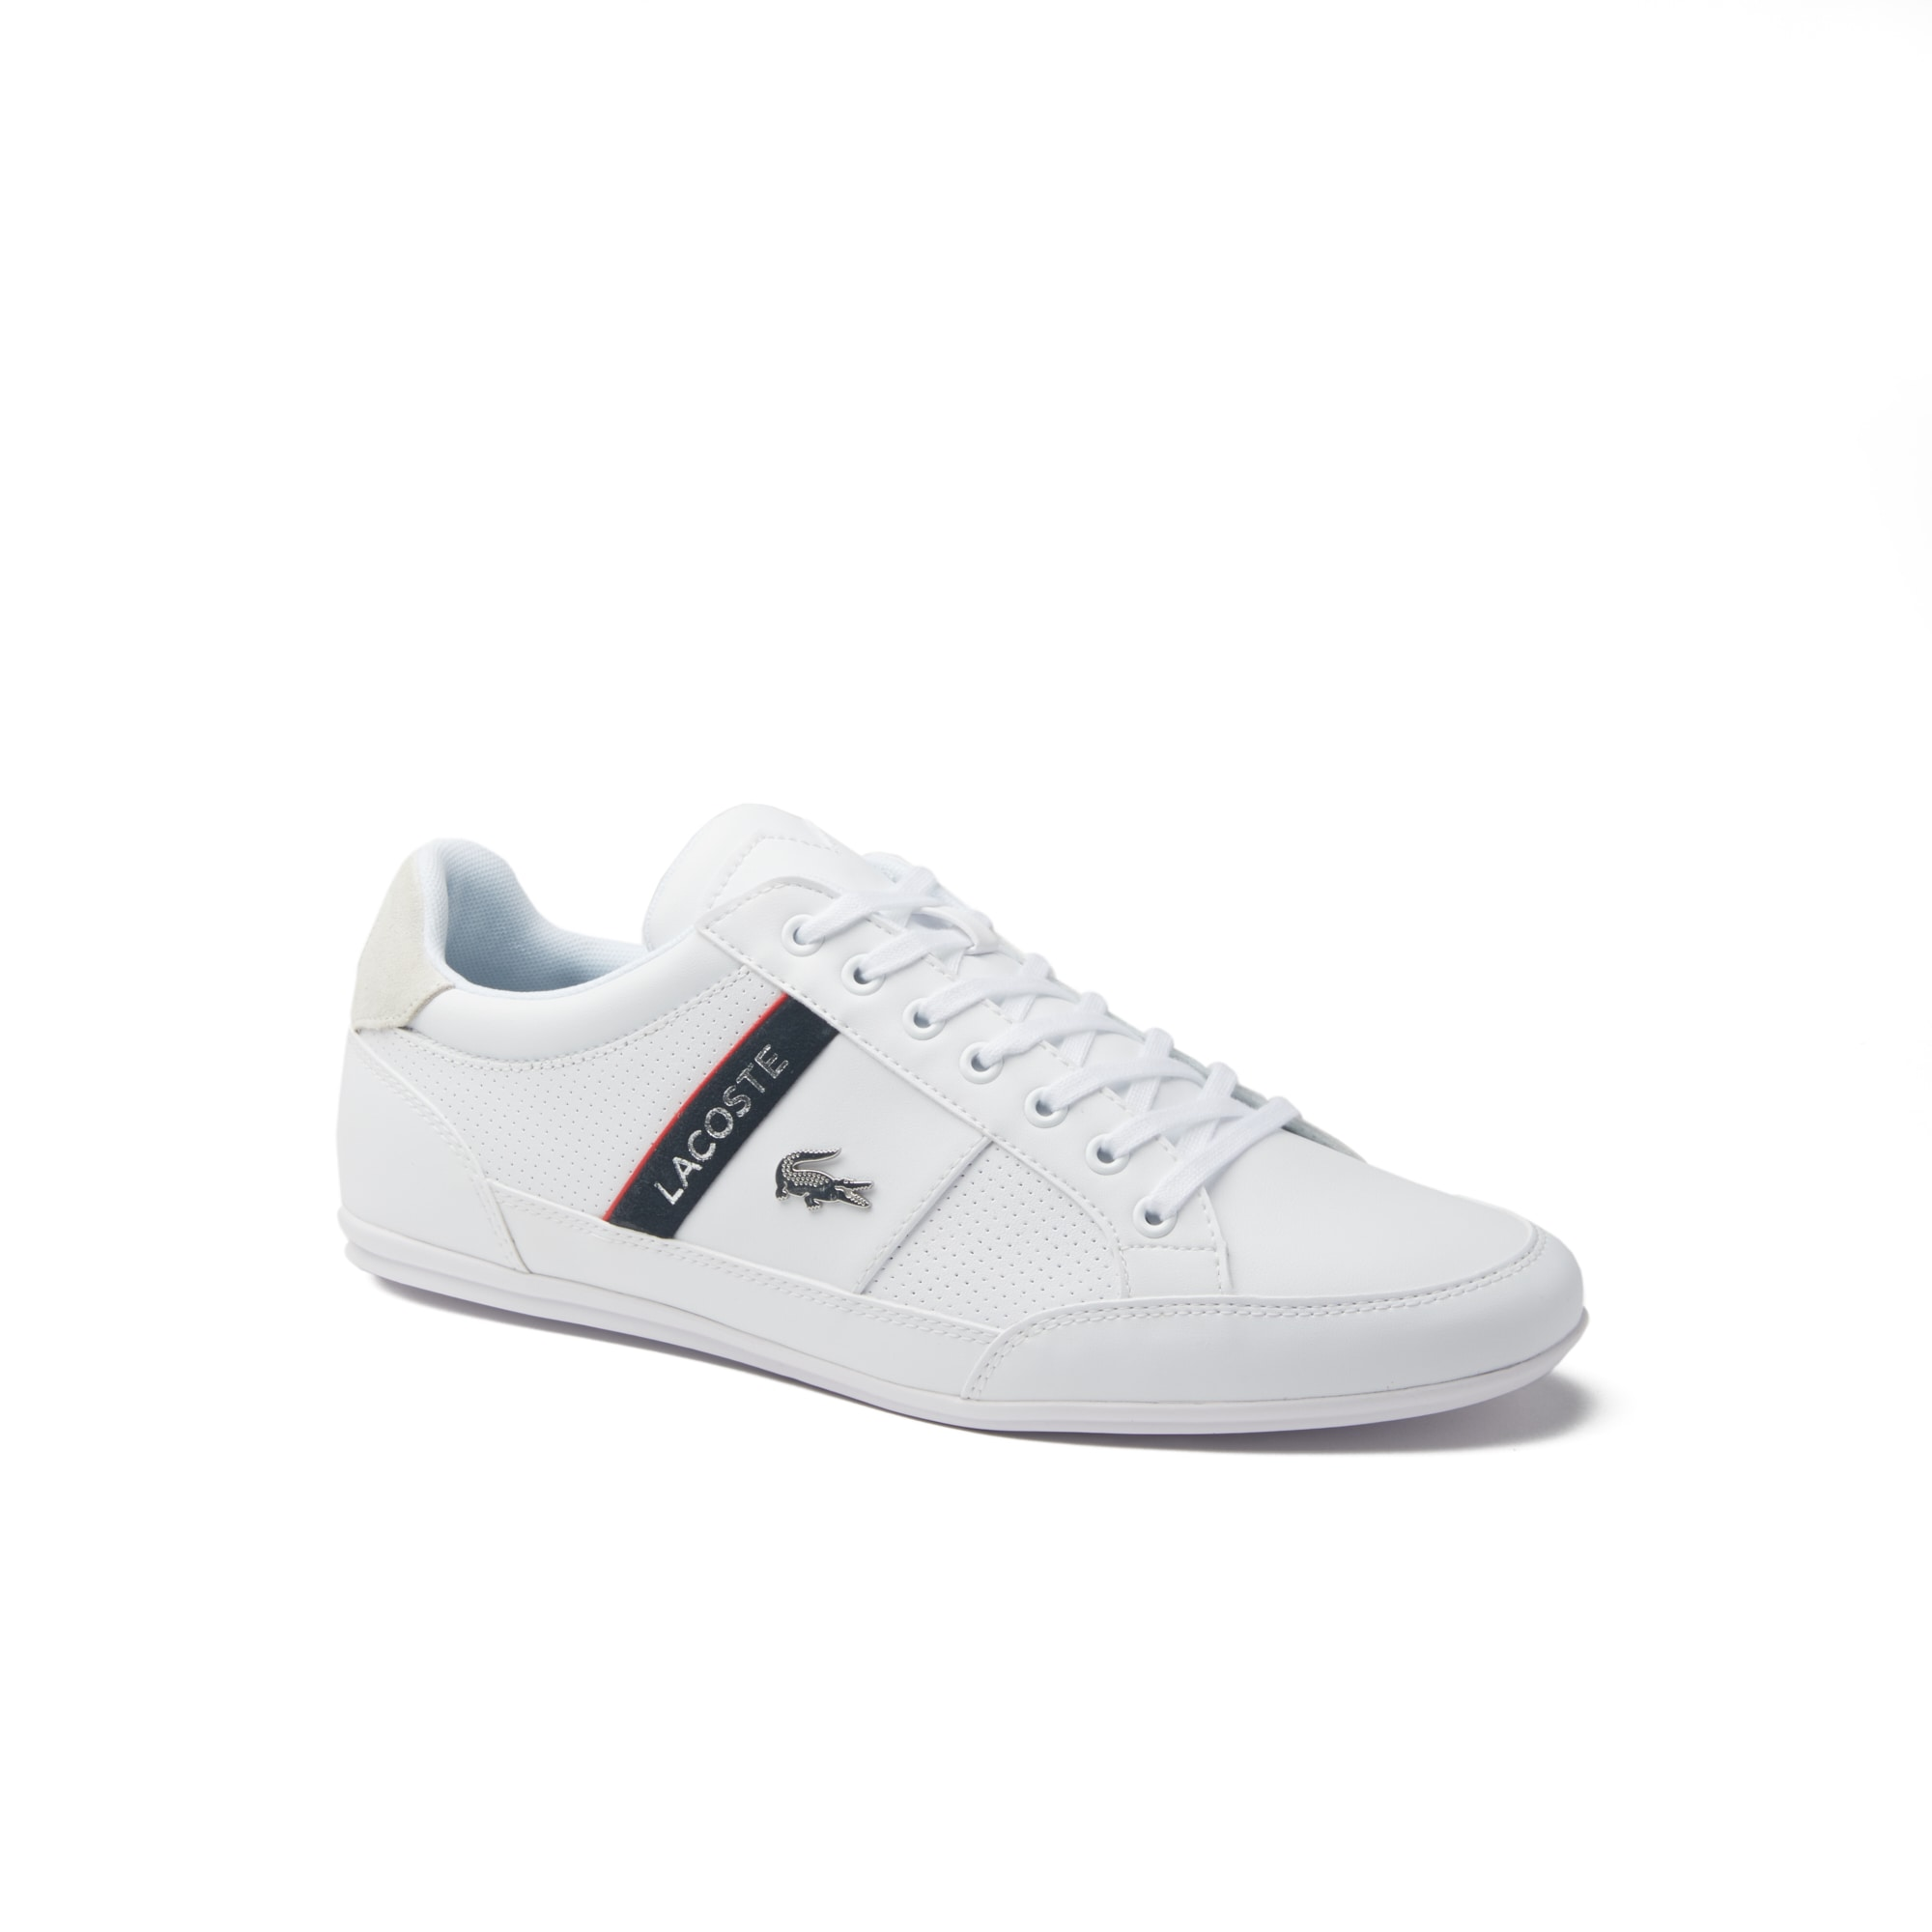 3fe9ce048a Men's Shoes | Shoes for Men | LACOSTE